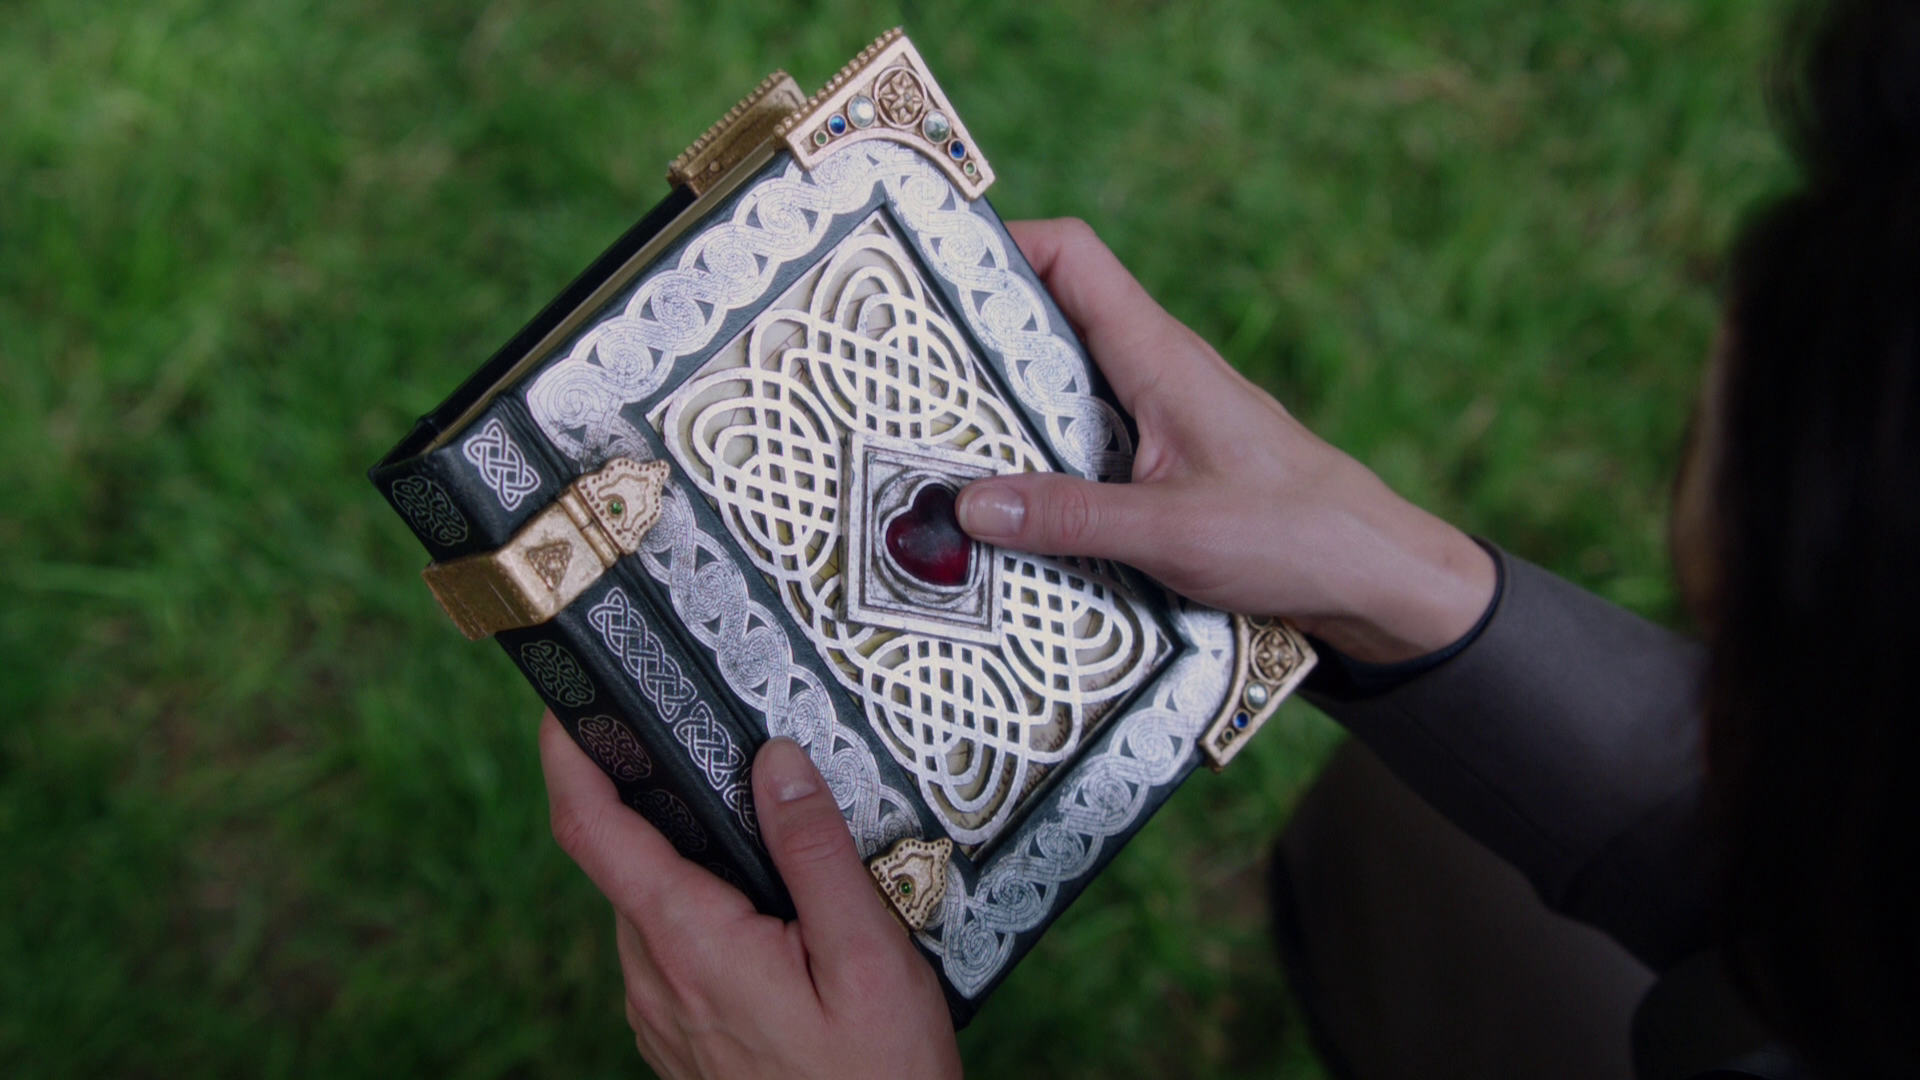 Cora's Spell Book | Once Upon a Time Wiki | FANDOM powered by Wikia